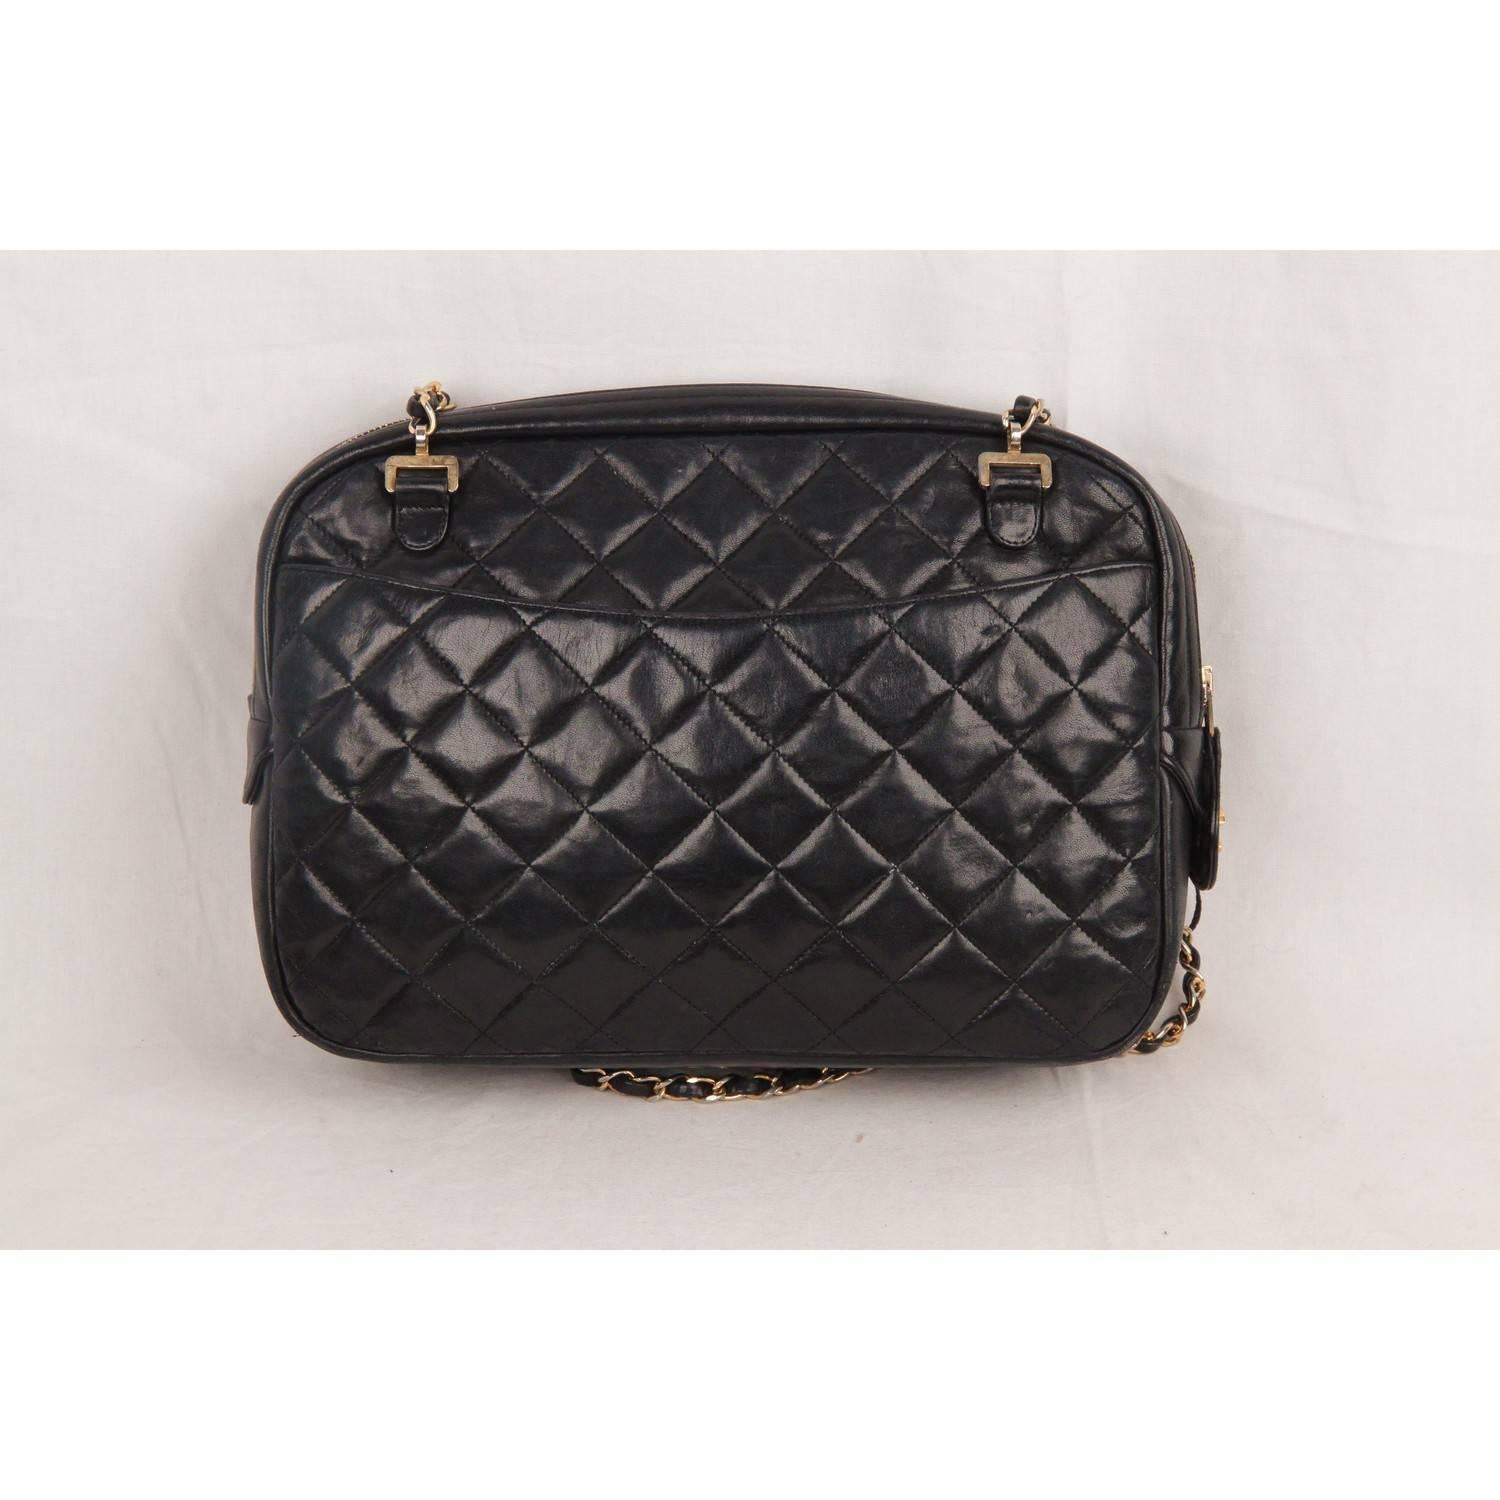 c9a22b72e4df Chanel Vintage Black Quilted Leather Large Camera Bag For Sale at 1stdibs